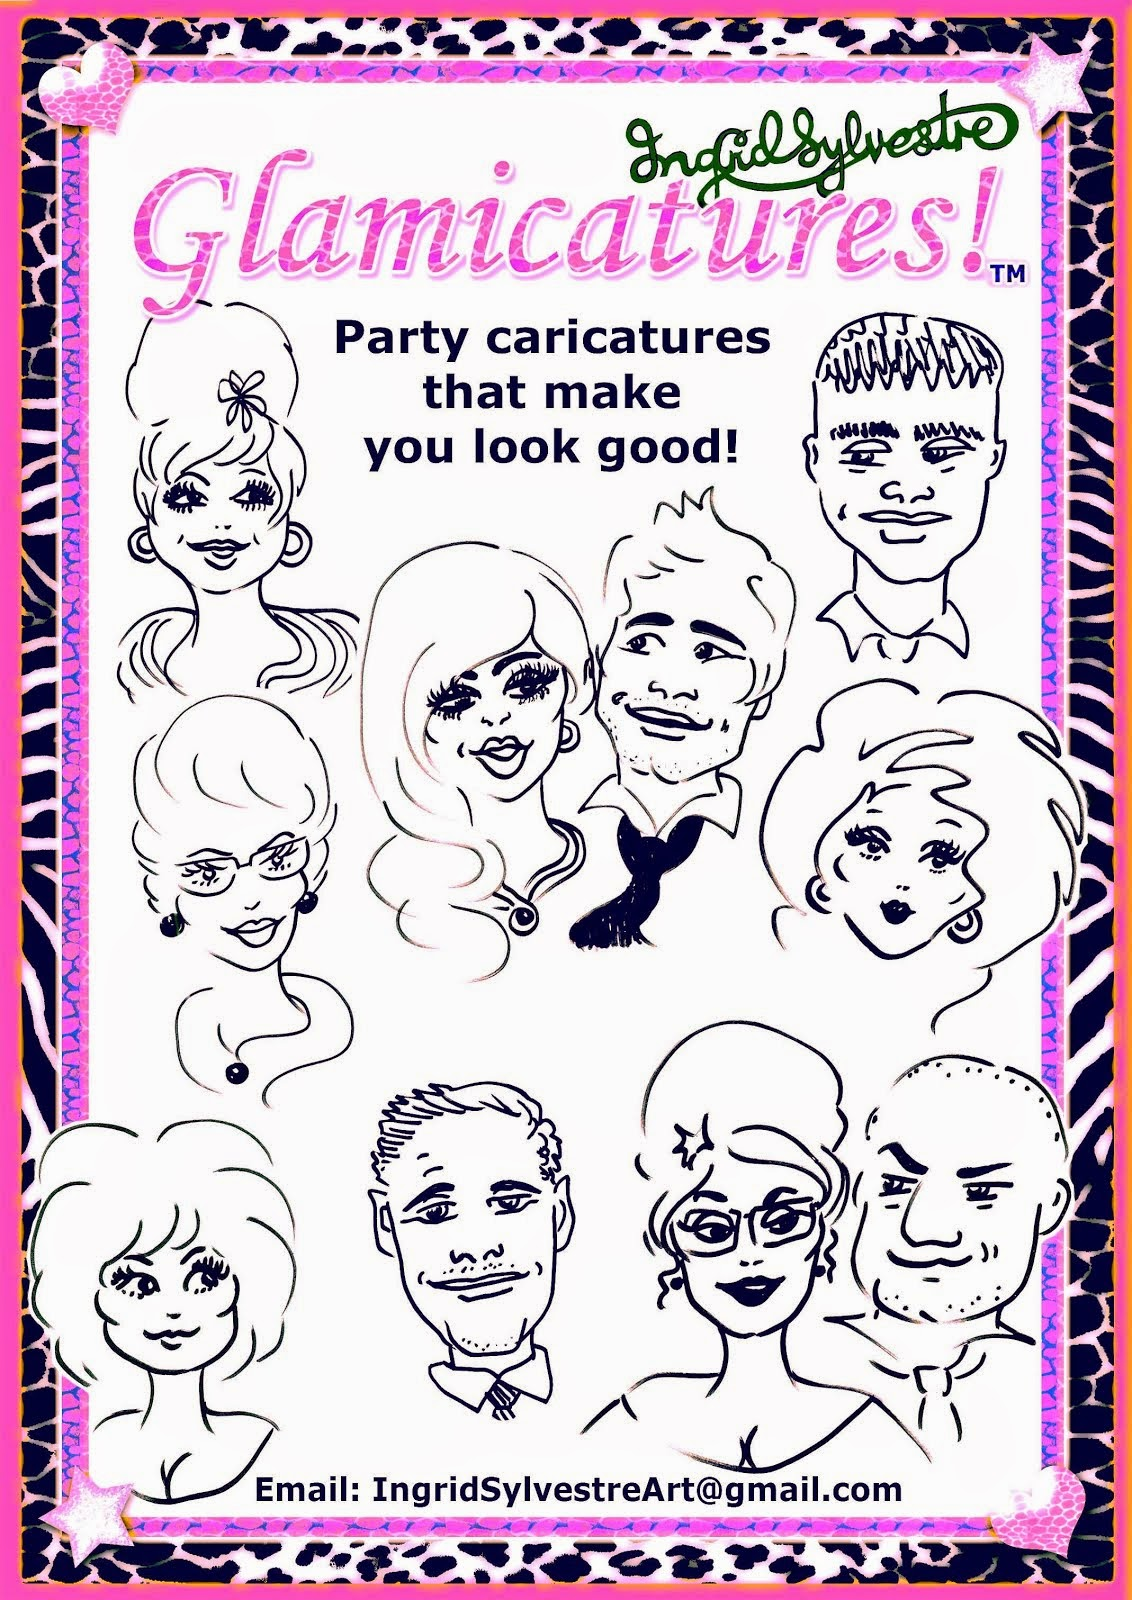 North East Wedding Entertainment - Glamicatures TM Caricatures that make you look good!